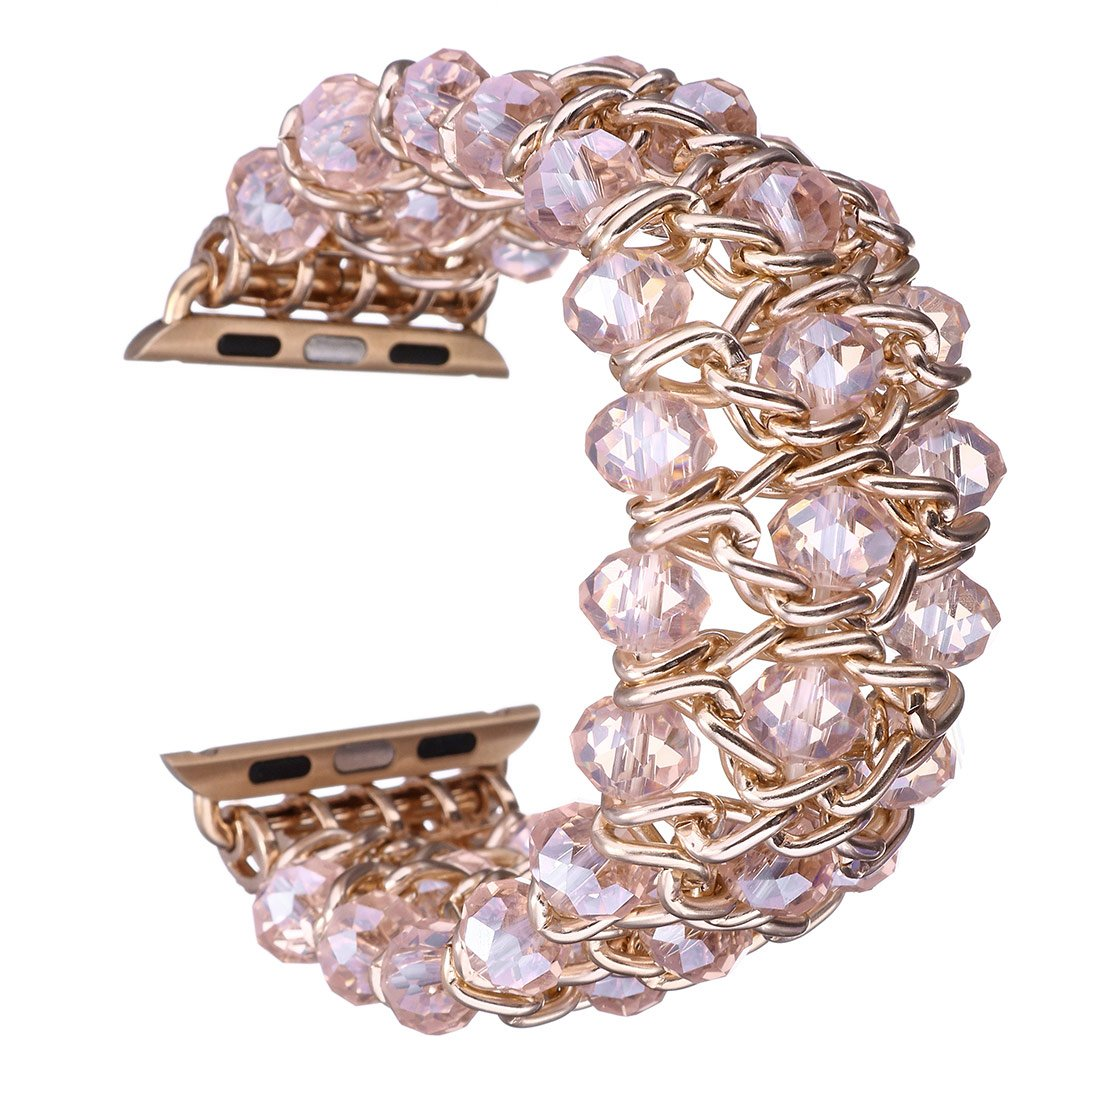 Gets for Apple Watch Band Design Classy Retro Crystal Beaded Stretch Elastic Watch Strap for Iwatch Band (Pink,38mm)